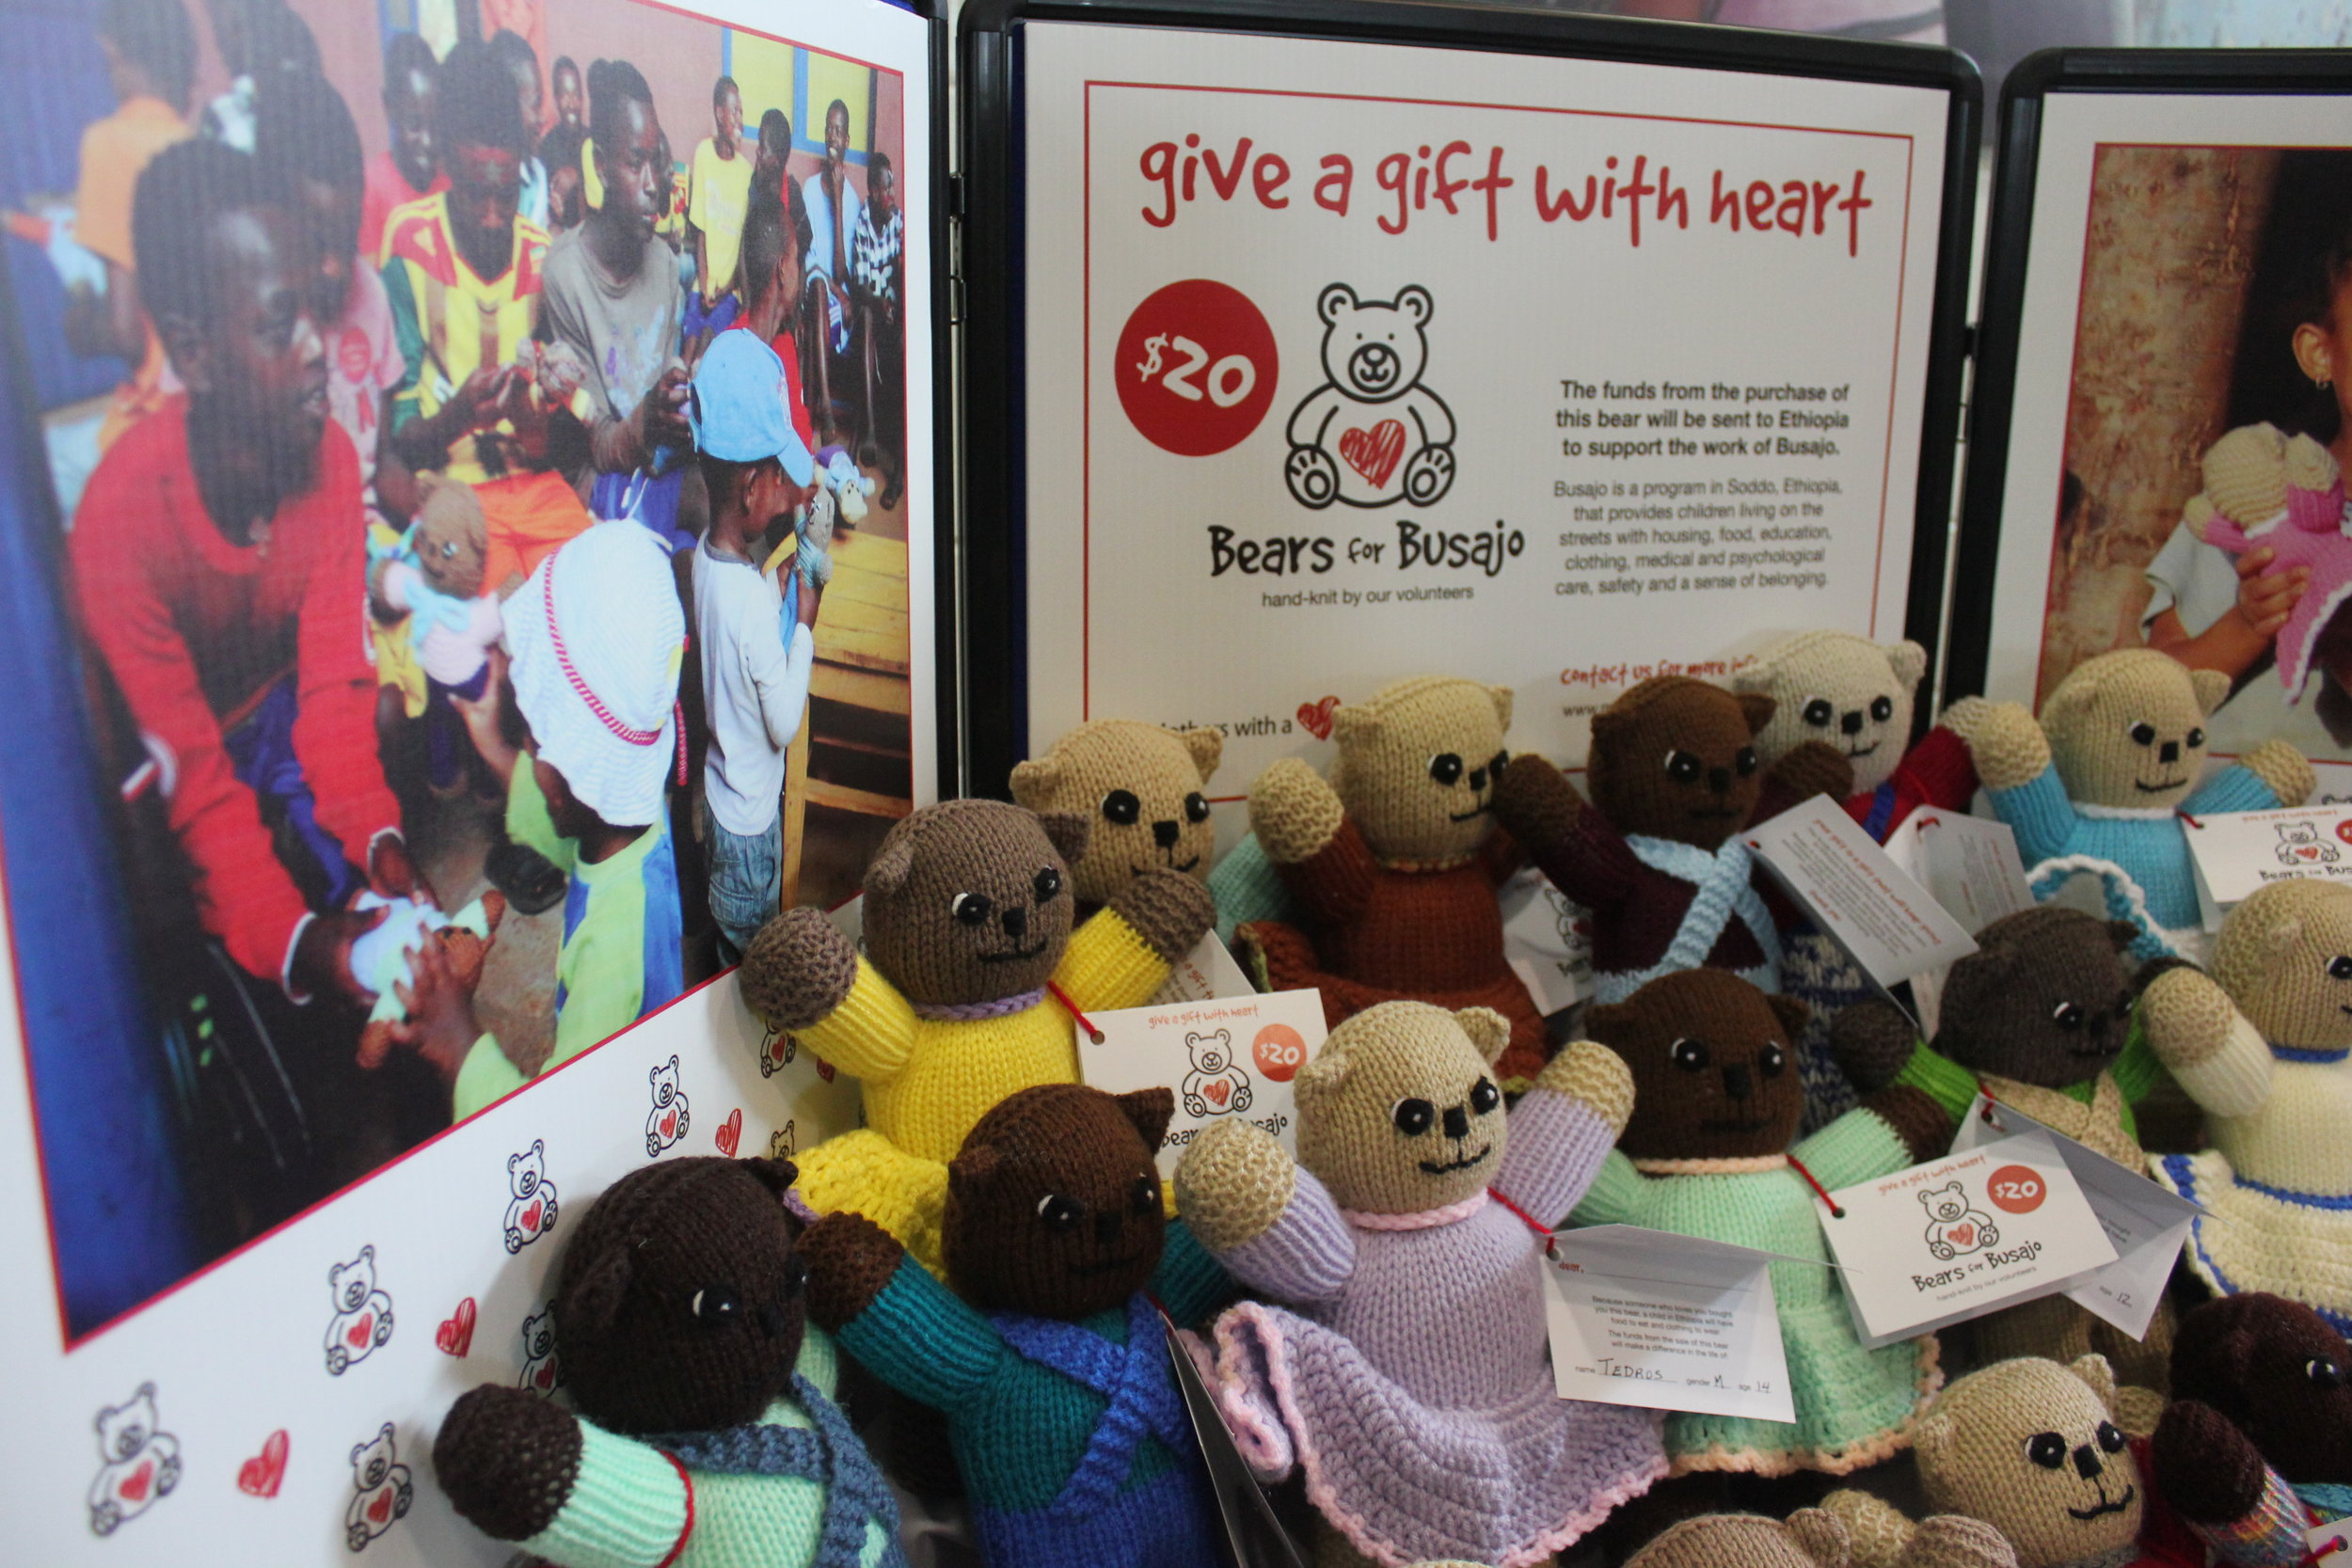 Our Bears with Busajo are hand-knit by a team of incredible volunteers. Proceeds go to support our work in Ethiopia. We also bring a number of these bears to hand out to children at our projects when we go to visit.